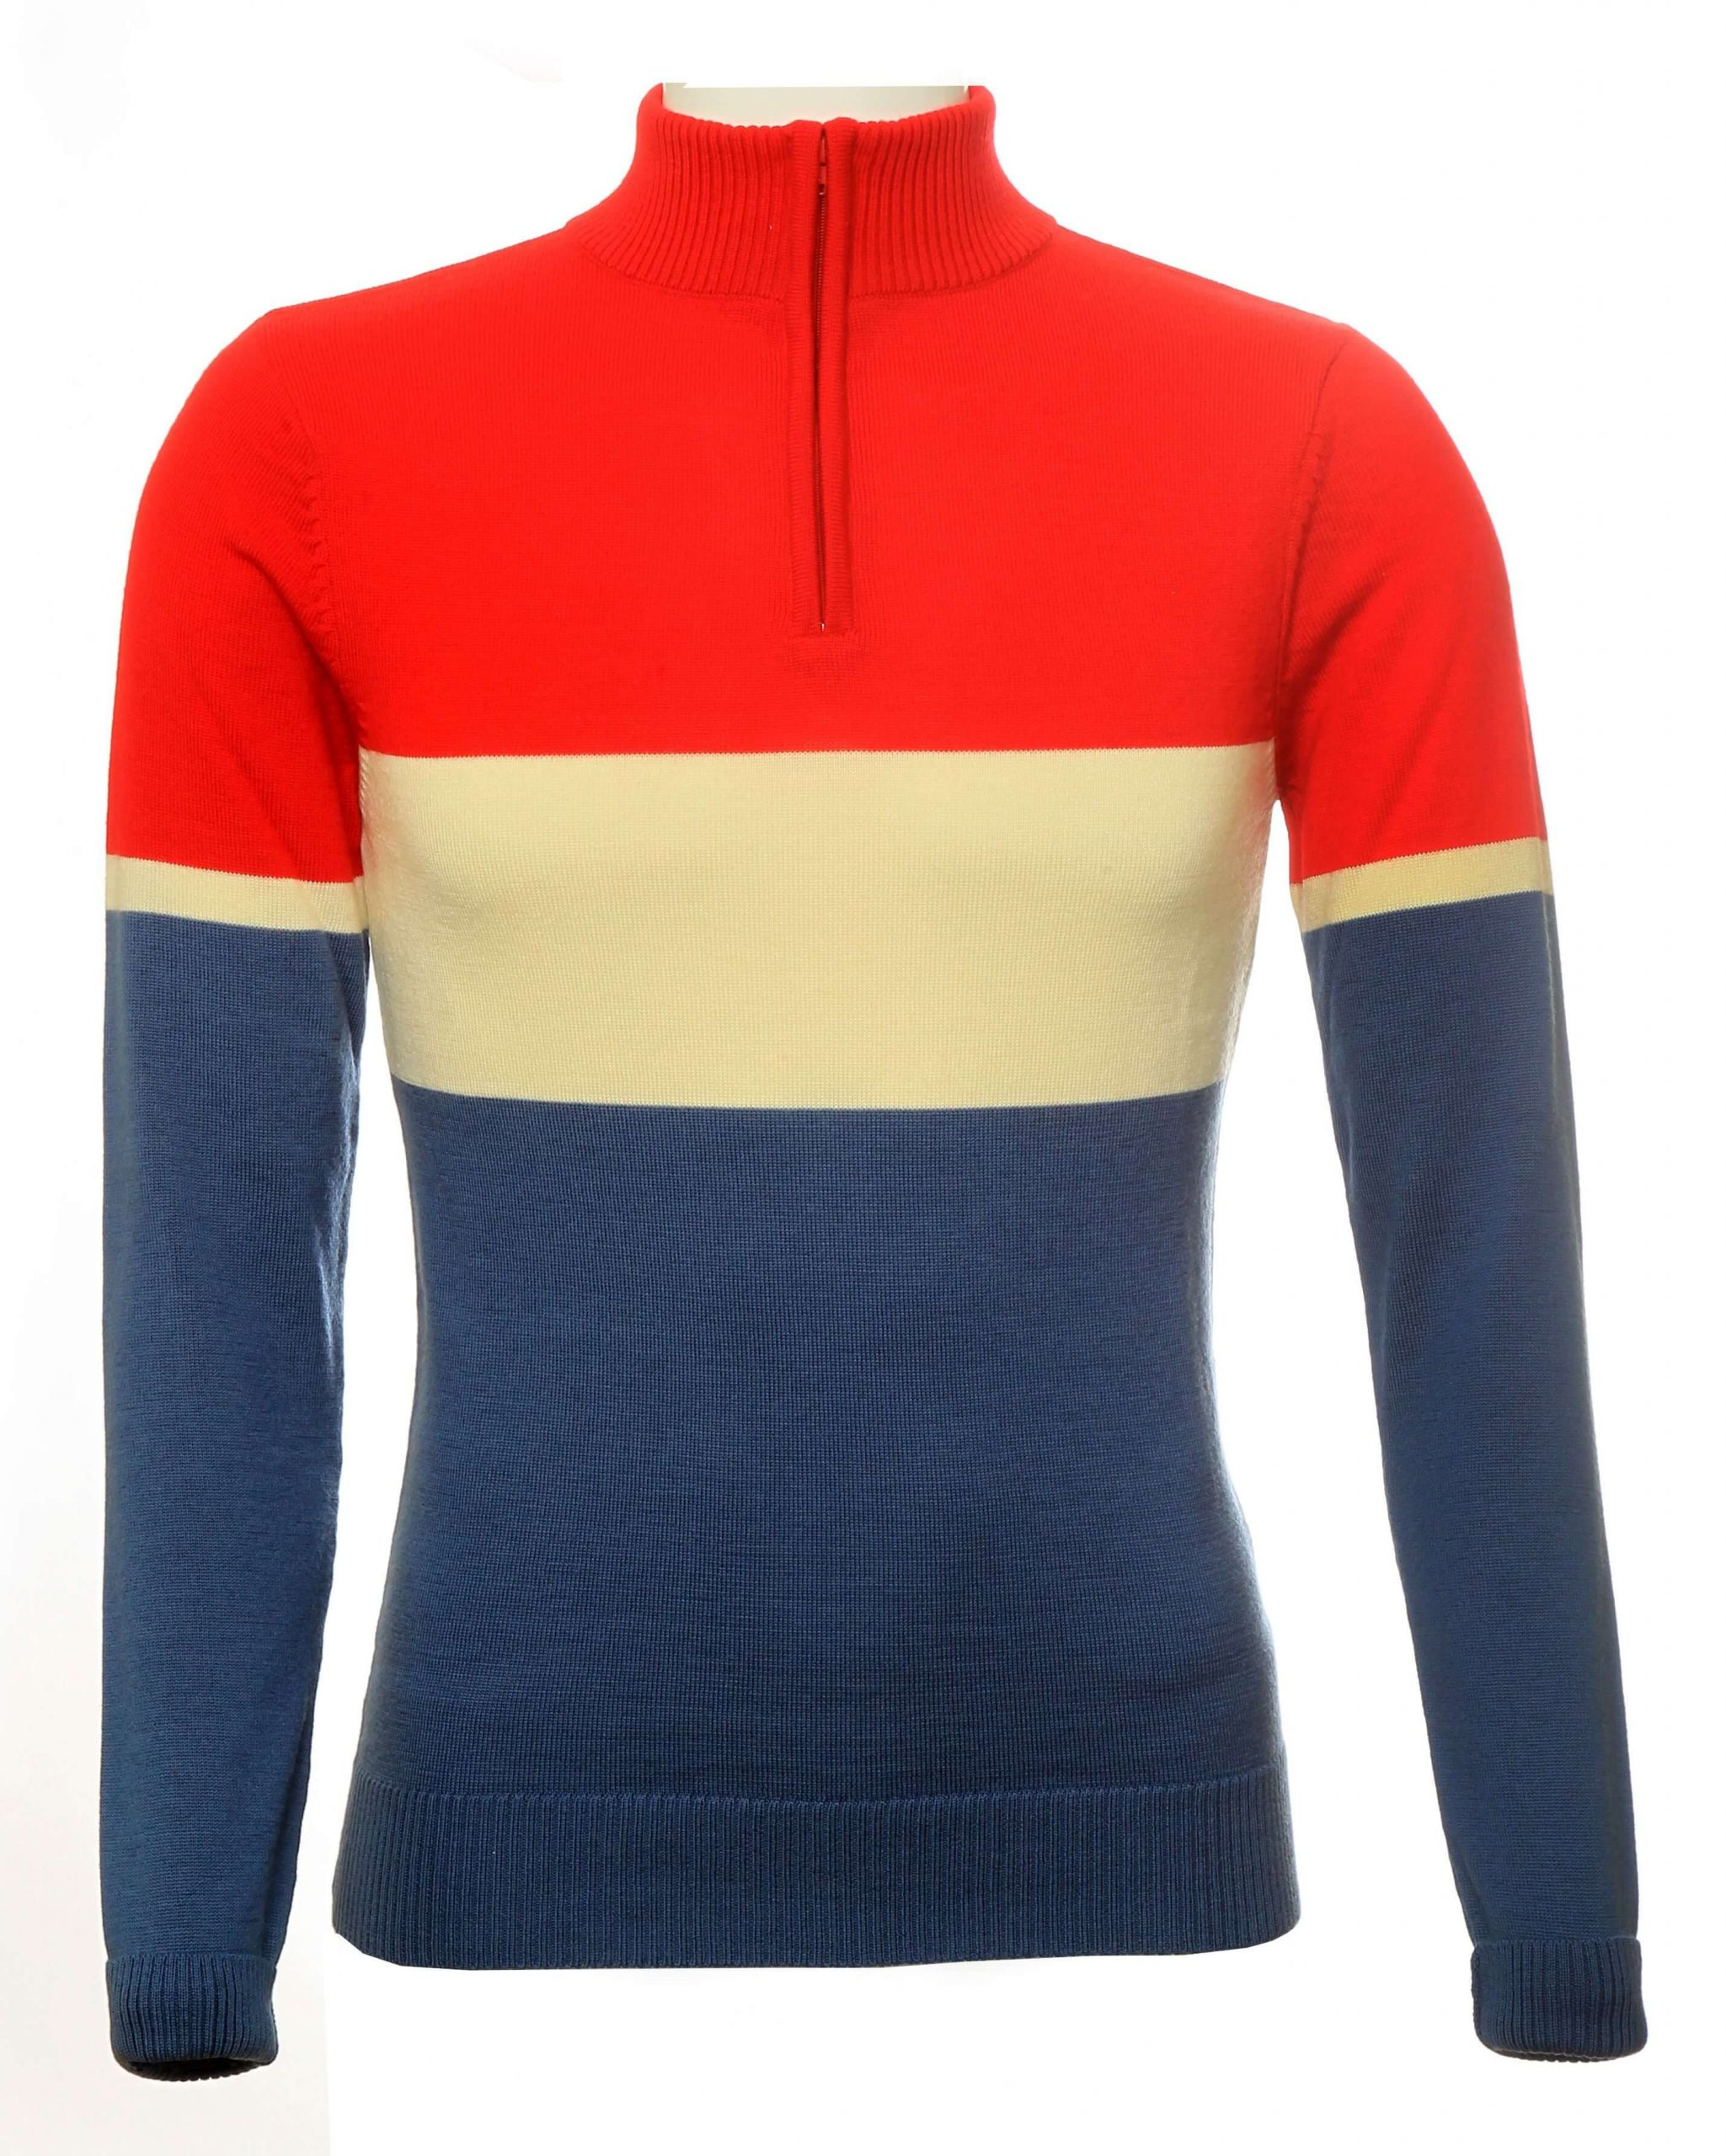 cycling jersey full sleeve